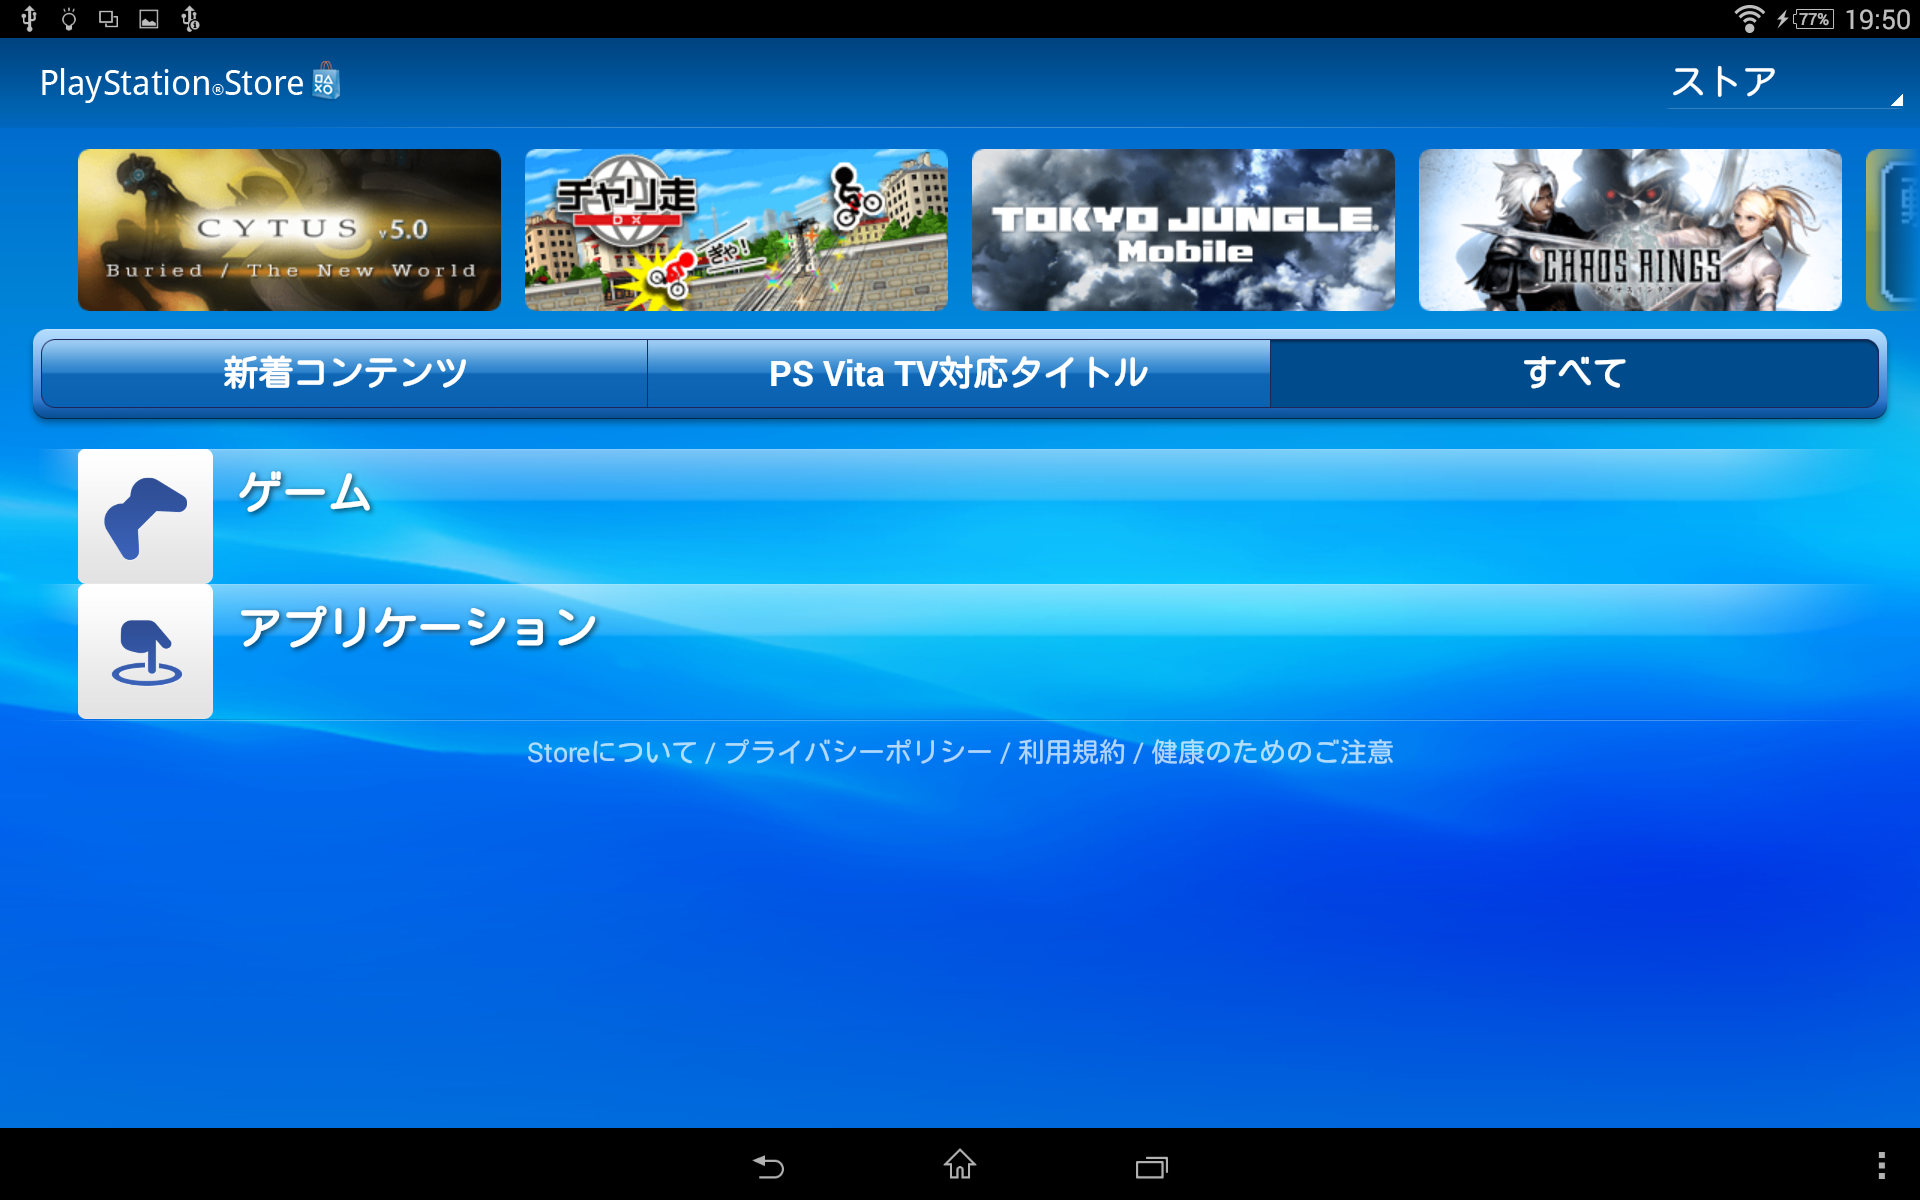 Playstation Mobile。同社独自のストア